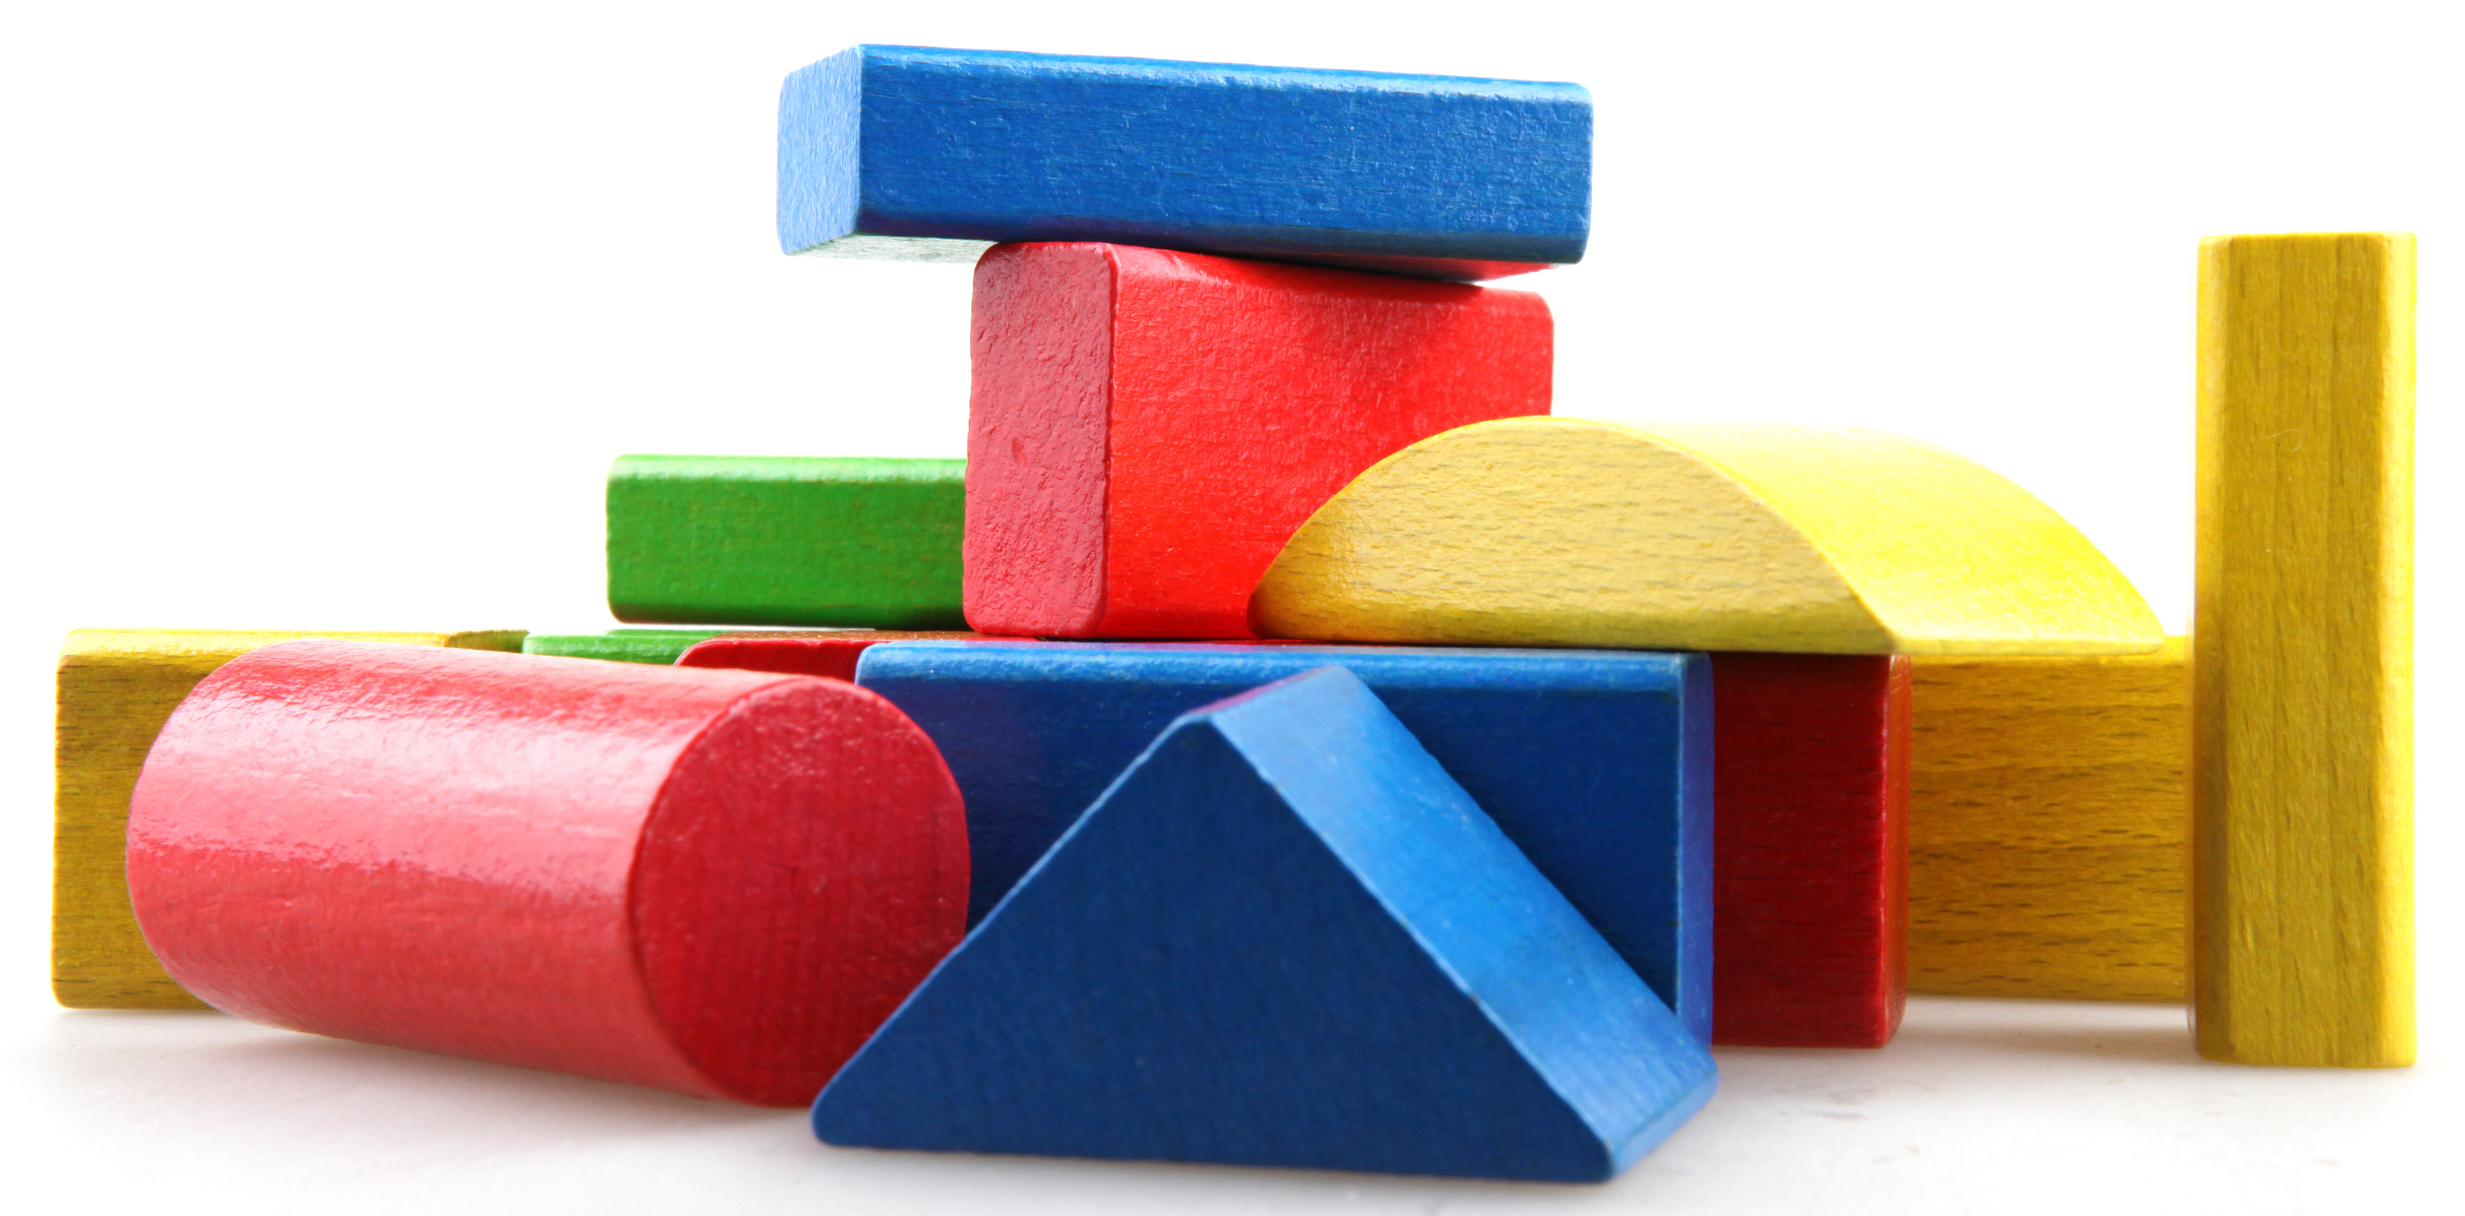 wooden blocks laying in semi-formation